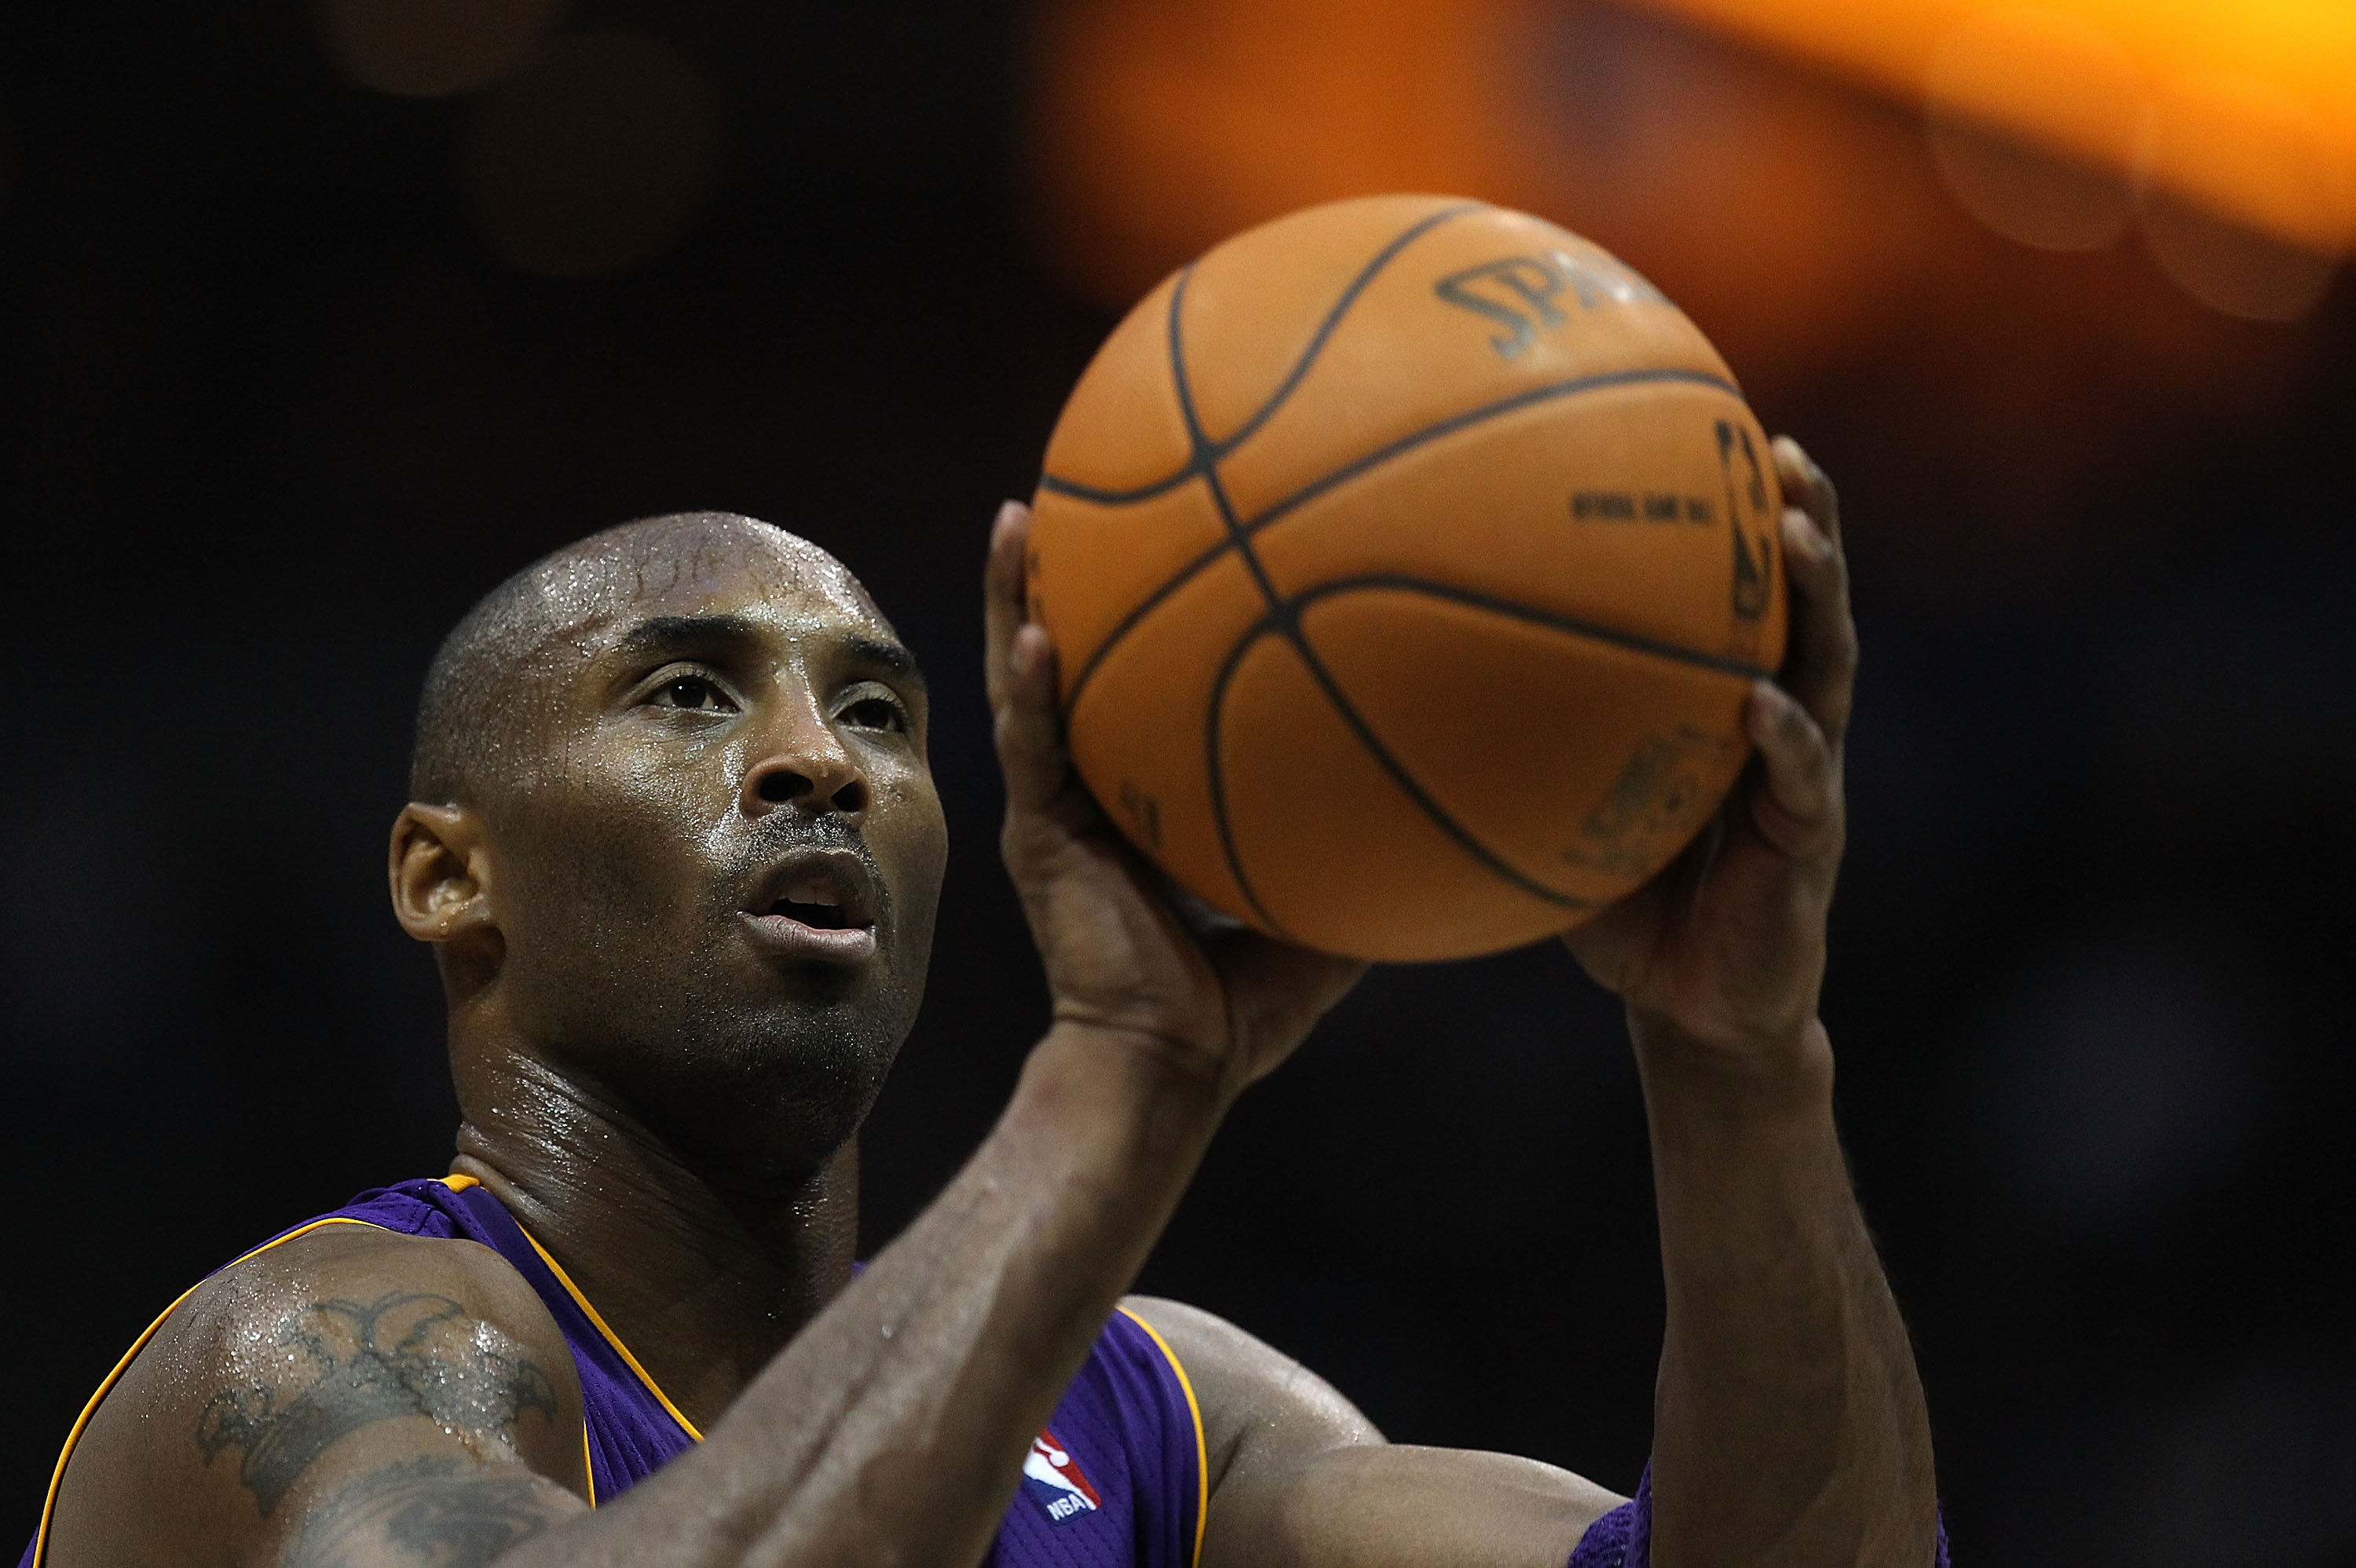 MILWAUKEE - NOVEMBER 16: Kobe Bryant #24 of the Los Angeles Lakers shoots a free-throw against the Milwaukee Bucks at the Bradley Center on November 16, 2010 in Milwaukee, Wisconsin. The Lakers defeated the Bucks 118-107. NOTE TO USER: User expressly ackn